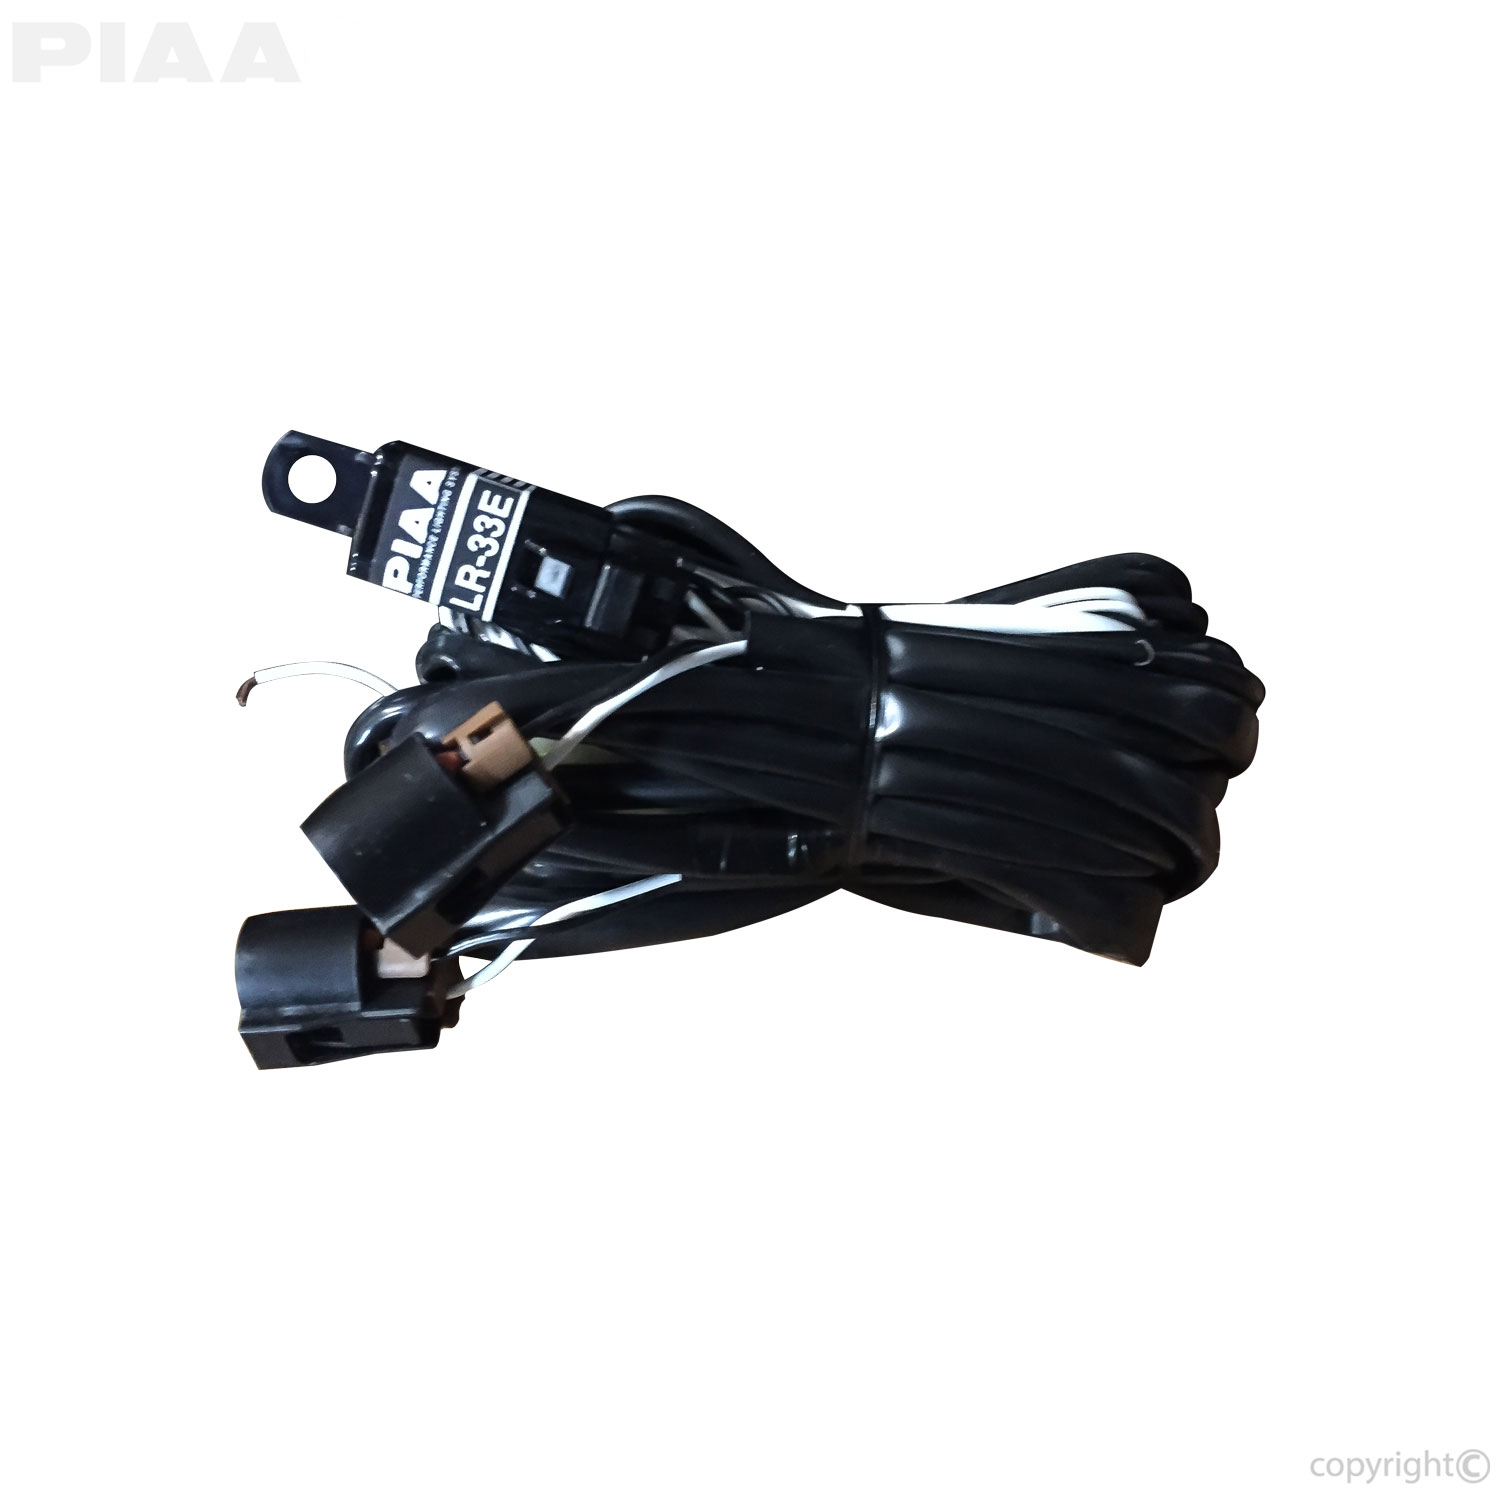 piaa 34087 410 harness hr?bw=600 piaa piaa wiring harness for 410 series driving light kit, for piaa wiring harness at eliteediting.co